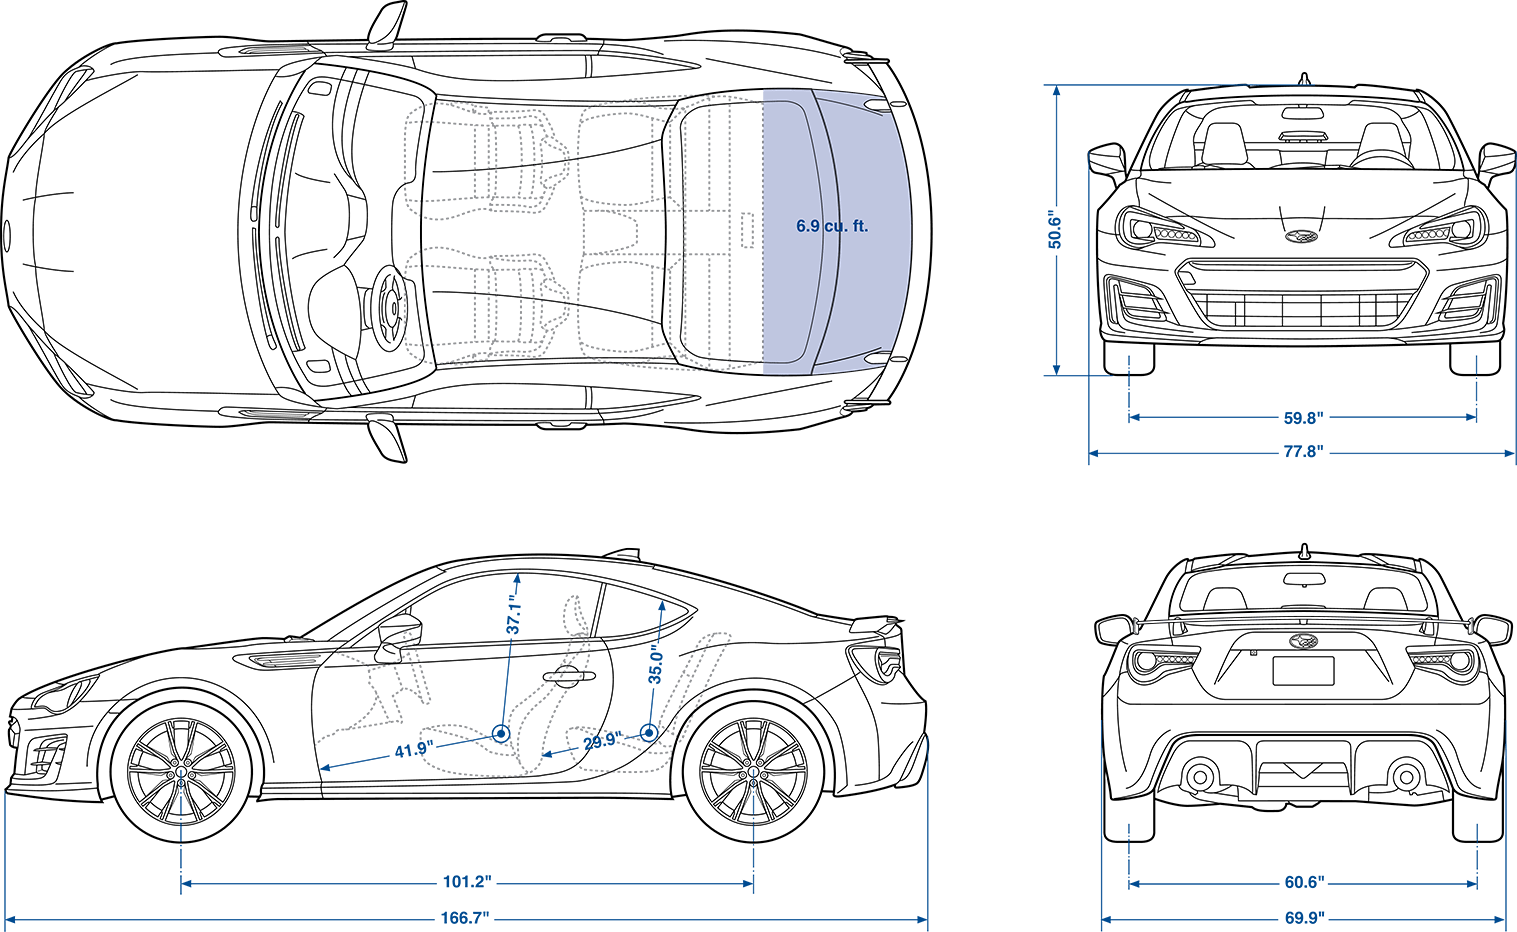 Scion Frs Engine Diagram Wiring And Fuse Box Location Besides Fr S Stereo Subaru Brz